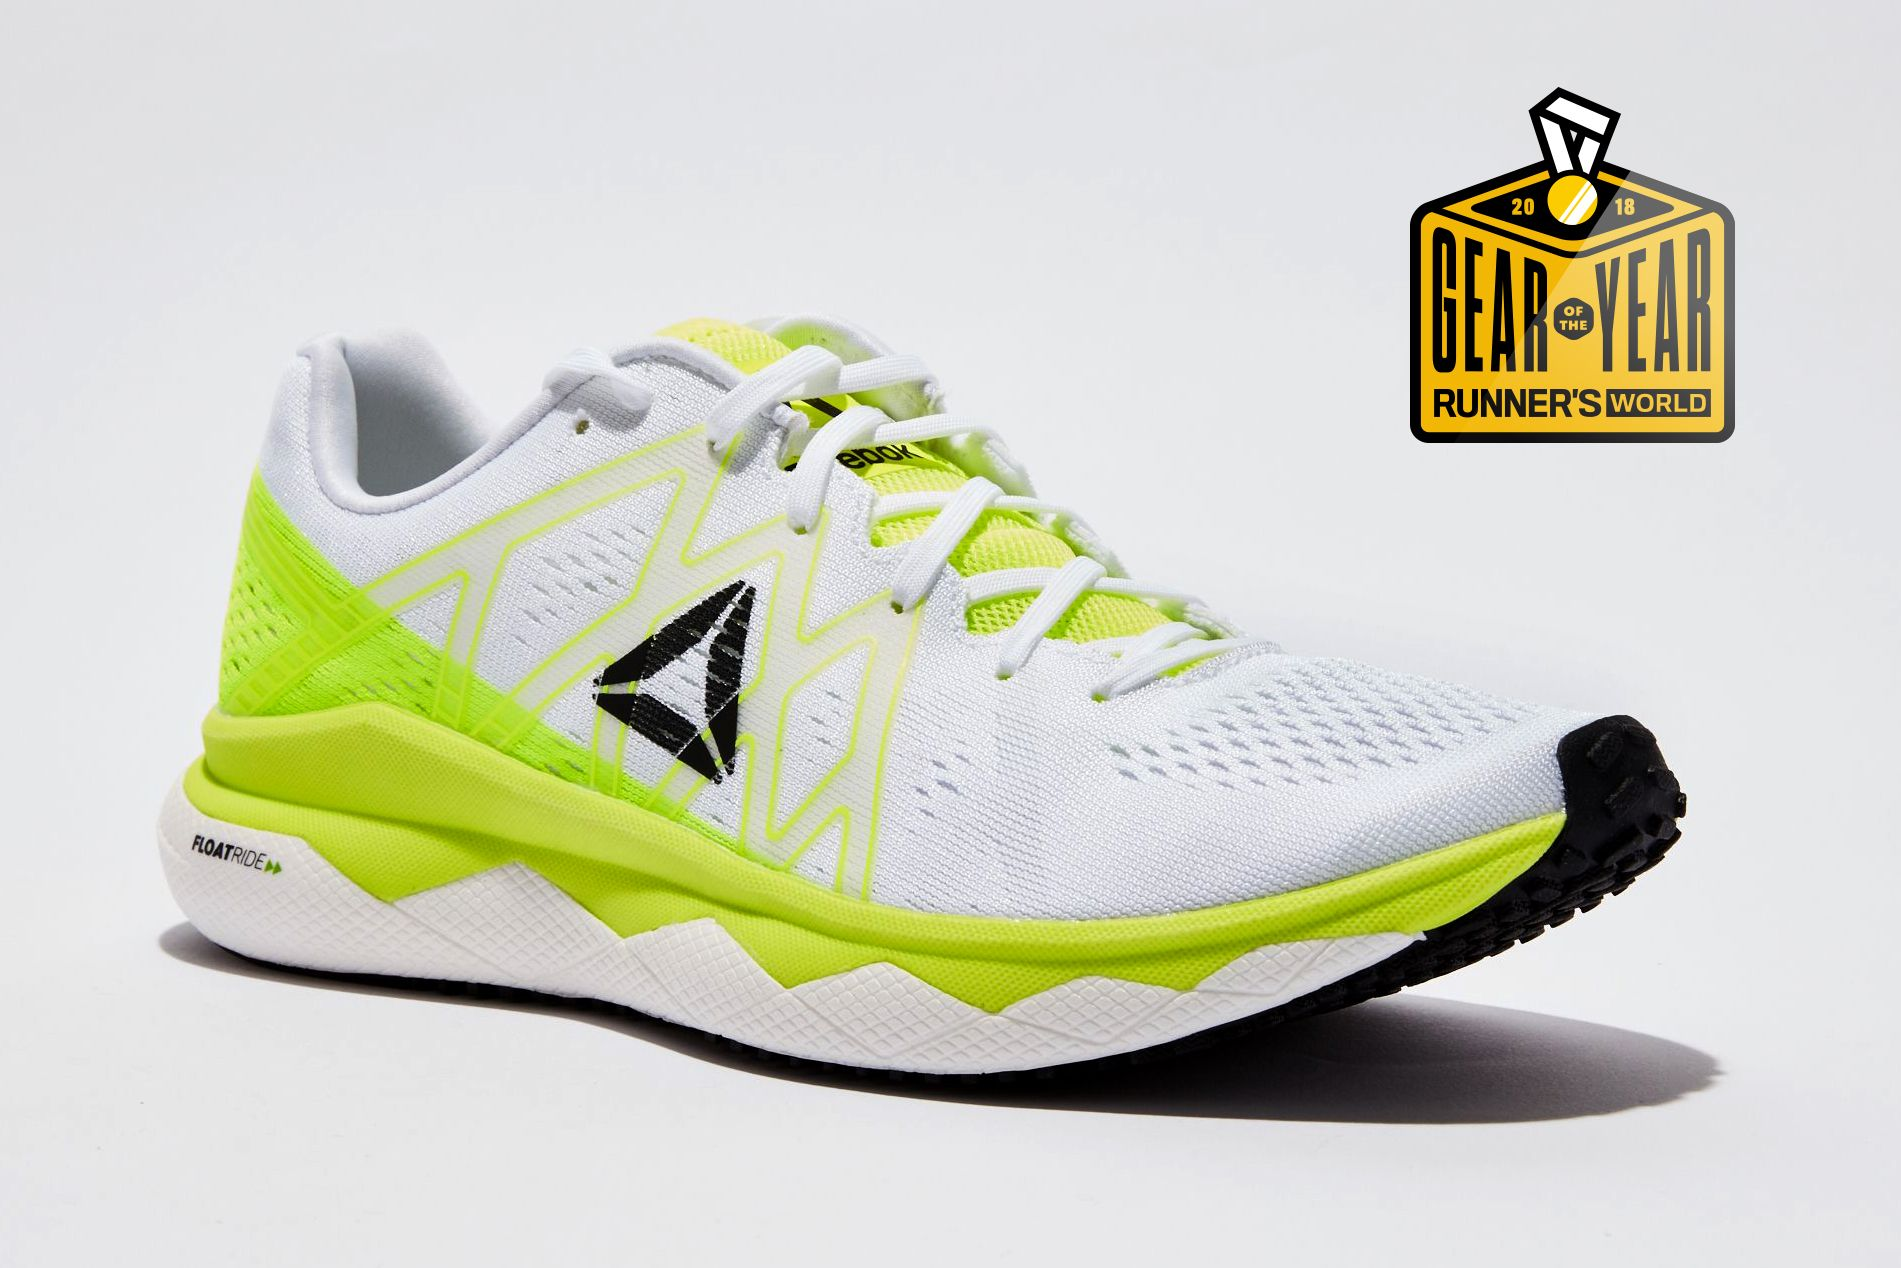 cc0041fa8f560 Reebok Floatride Run Fast Review - Lightweight Running Shoes